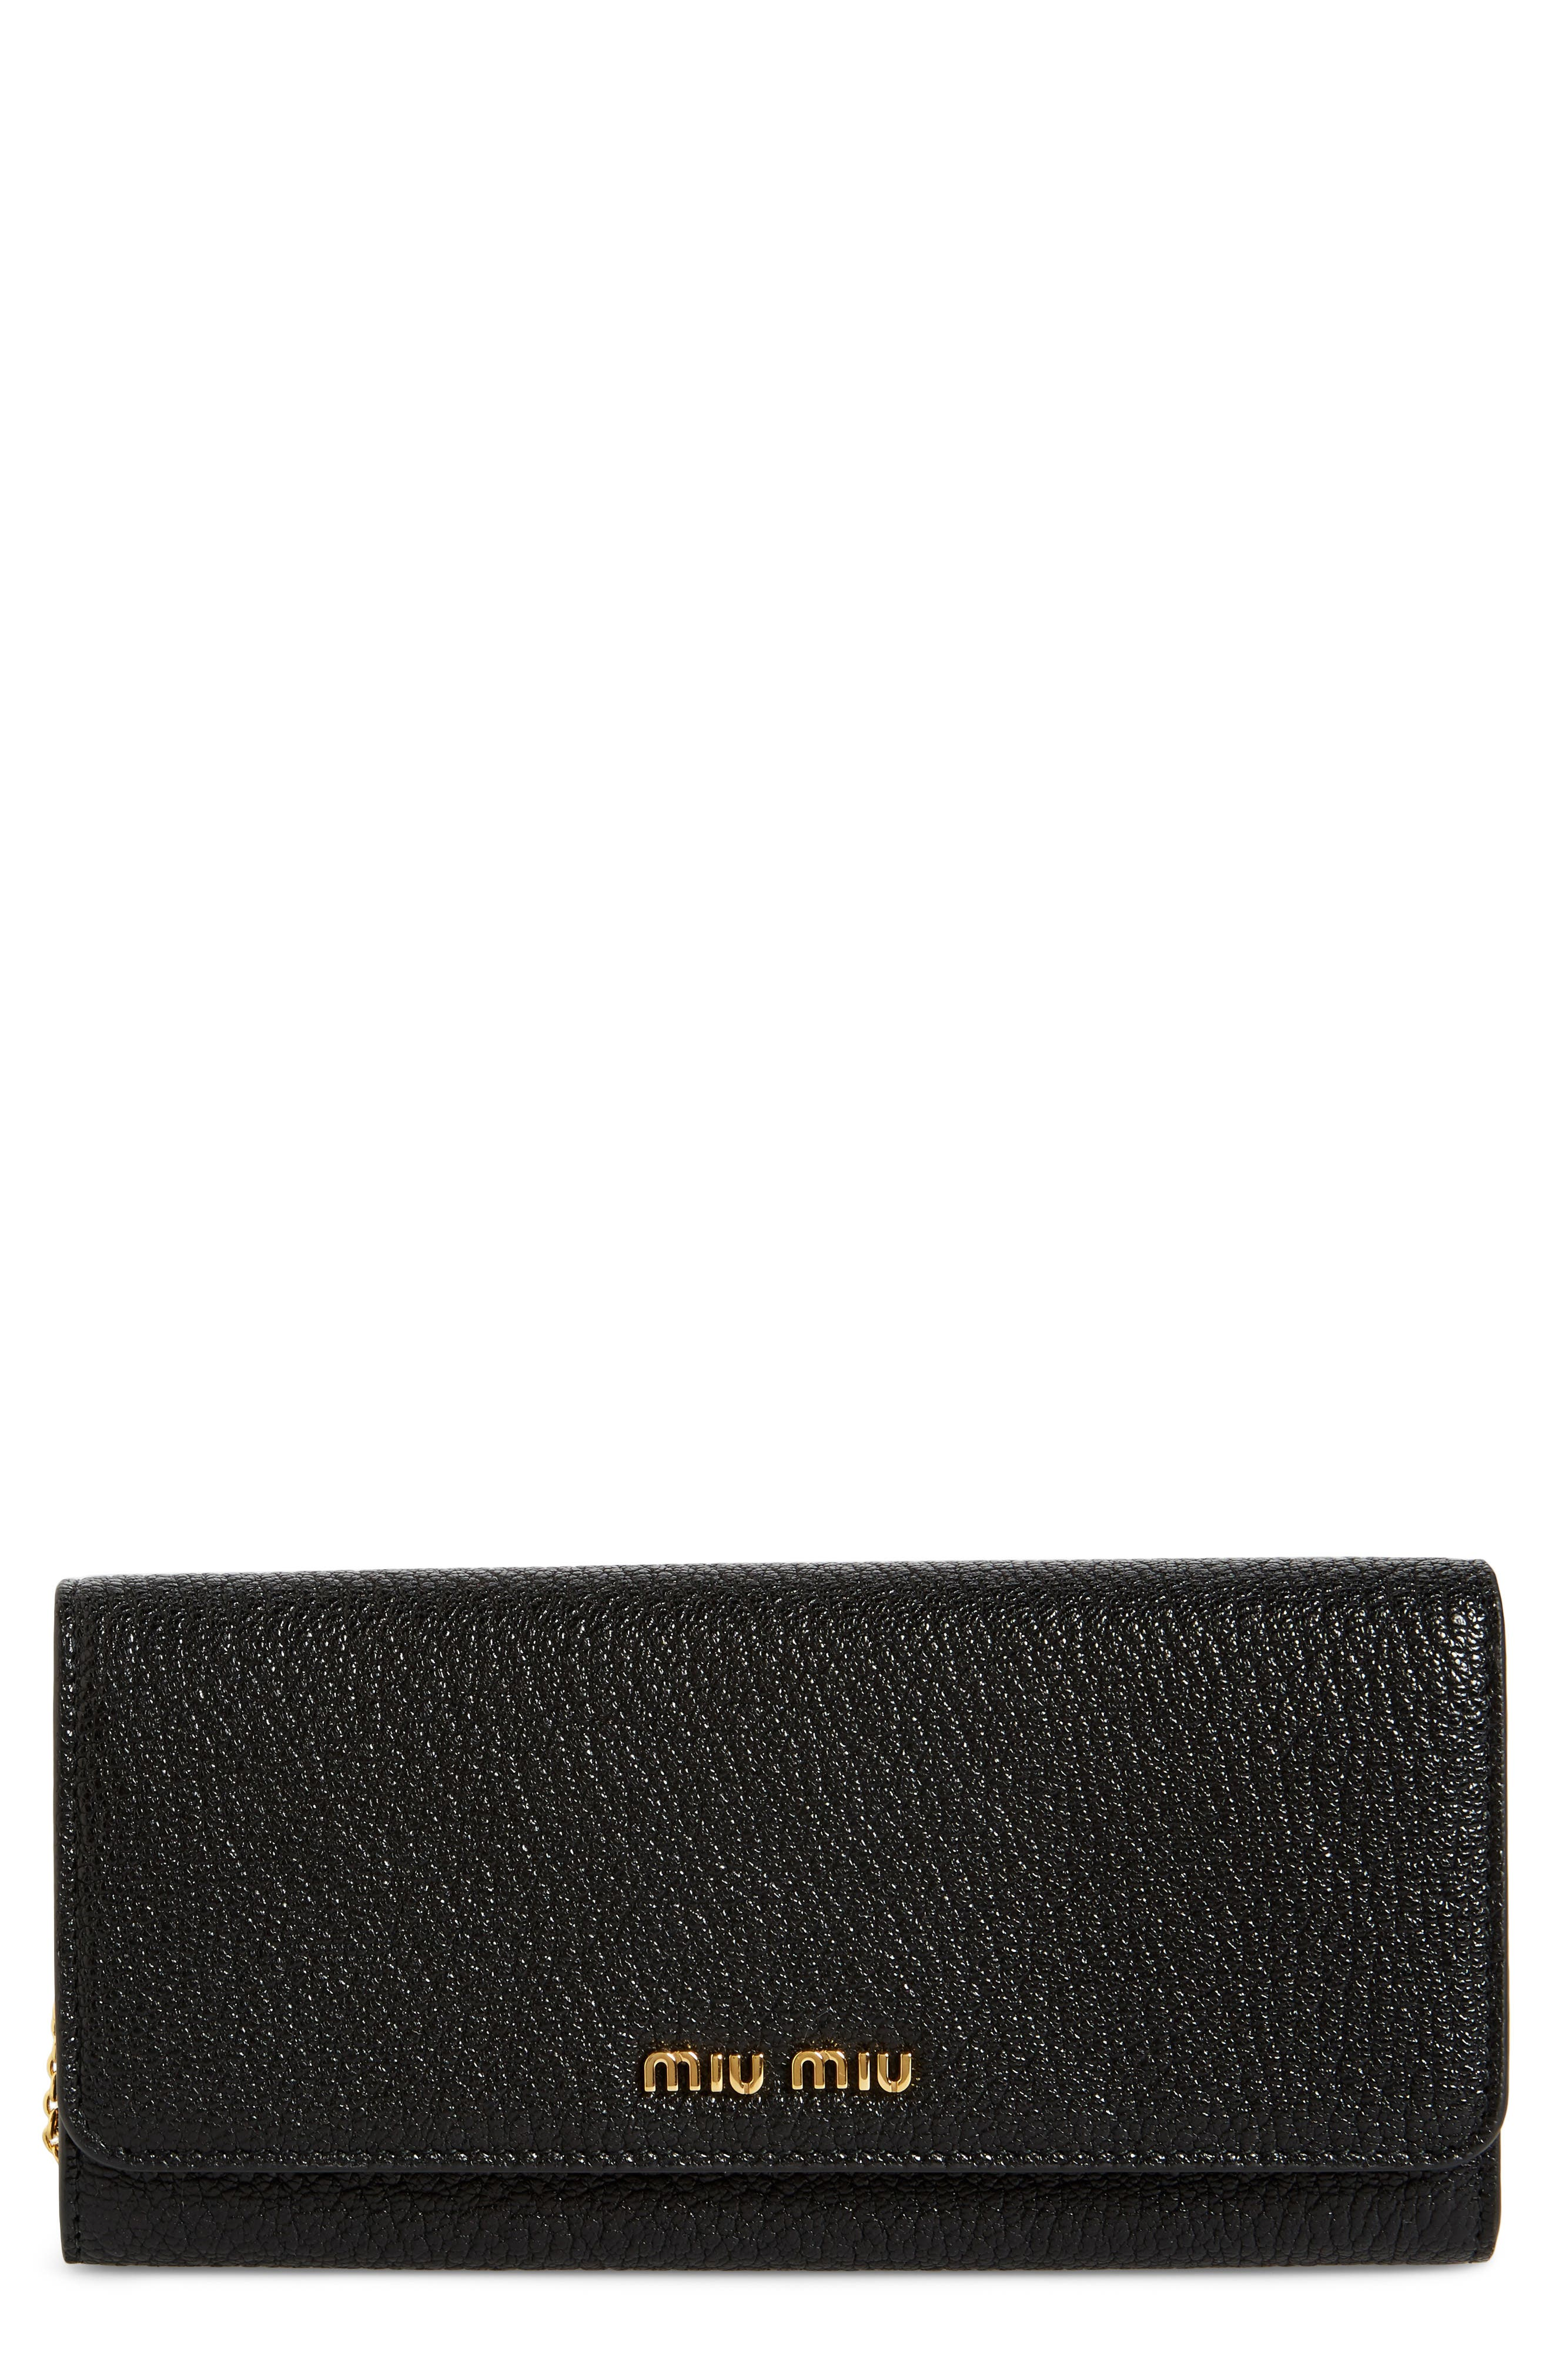 Miu Miu Madras Goatskin Leather Continental Wallet